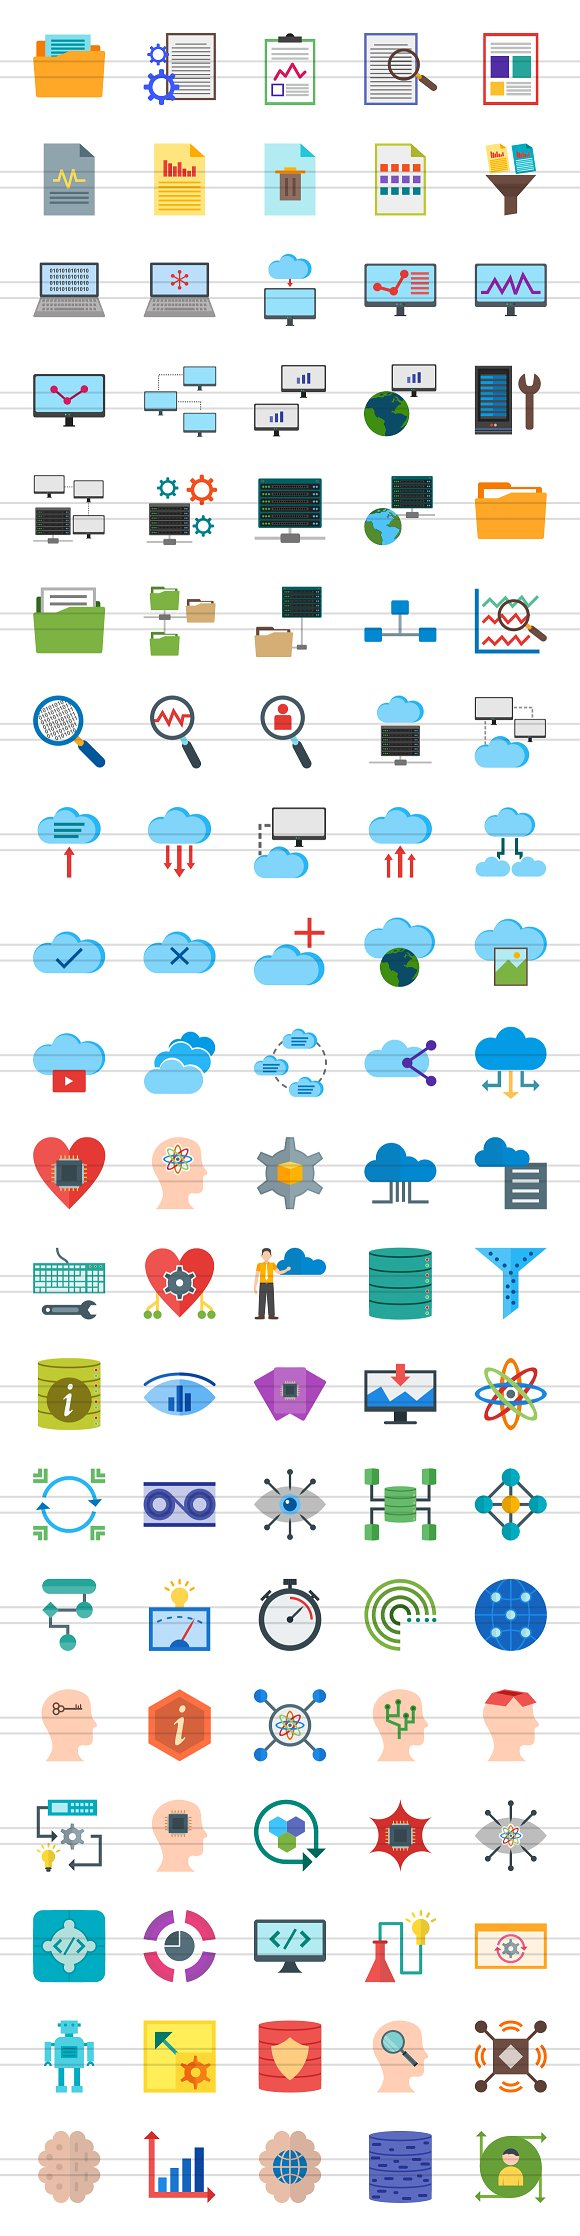 100 Data Flat Icons in Graphics - product preview 1